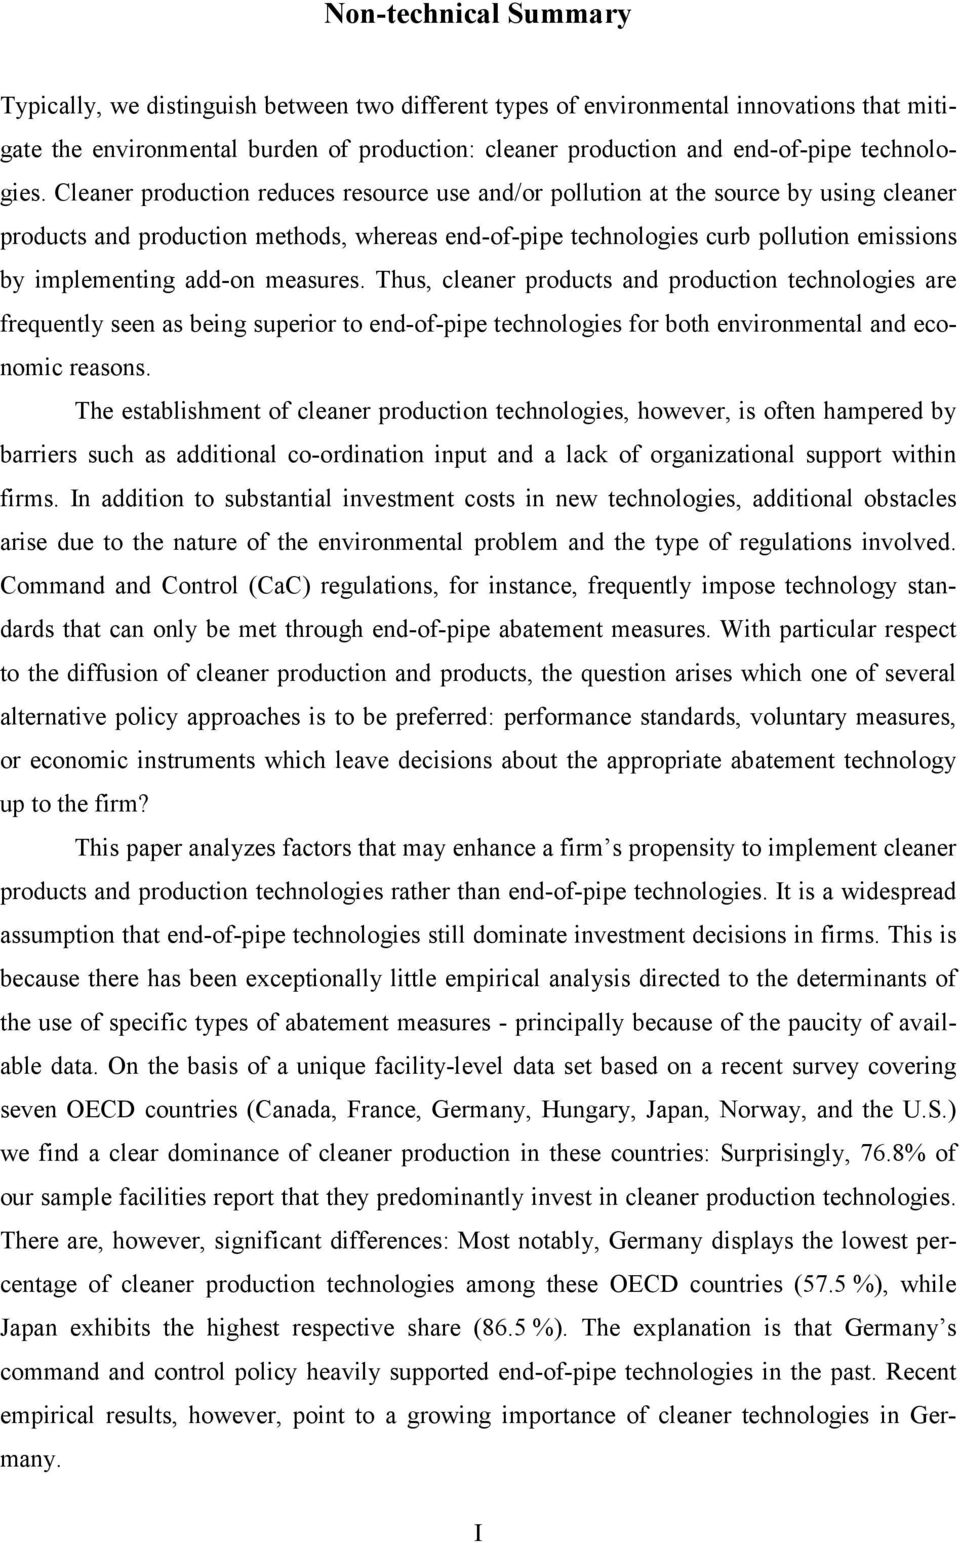 Cleaner production reduces resource use and/or pollution at the source by using cleaner products and production methods, whereas end-of-pipe technologies curb pollution emissions by implementing